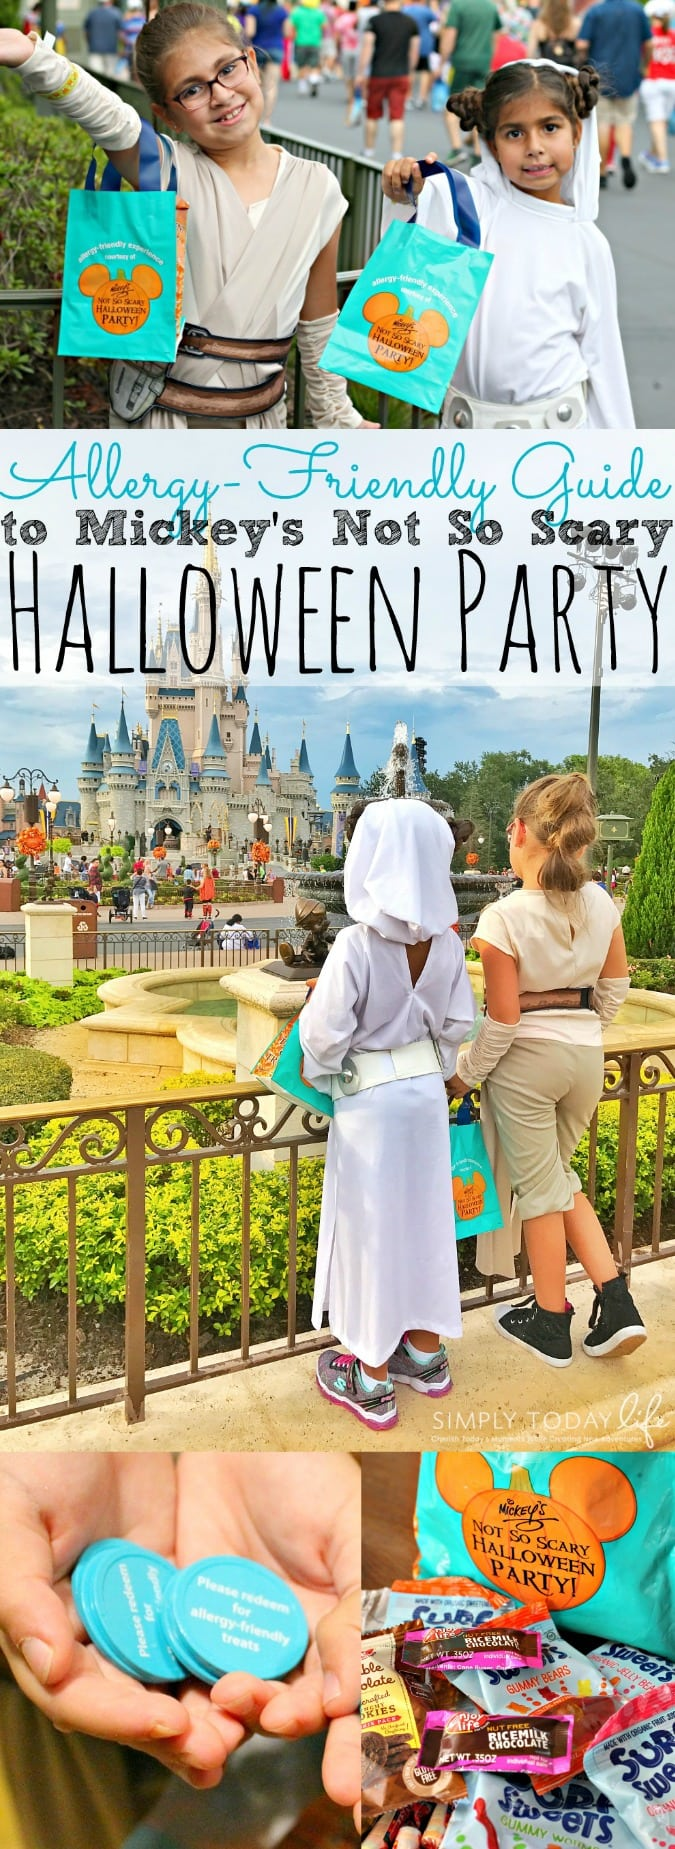 Allergy Friendly Guide Mickeys Not So Scary Halloween